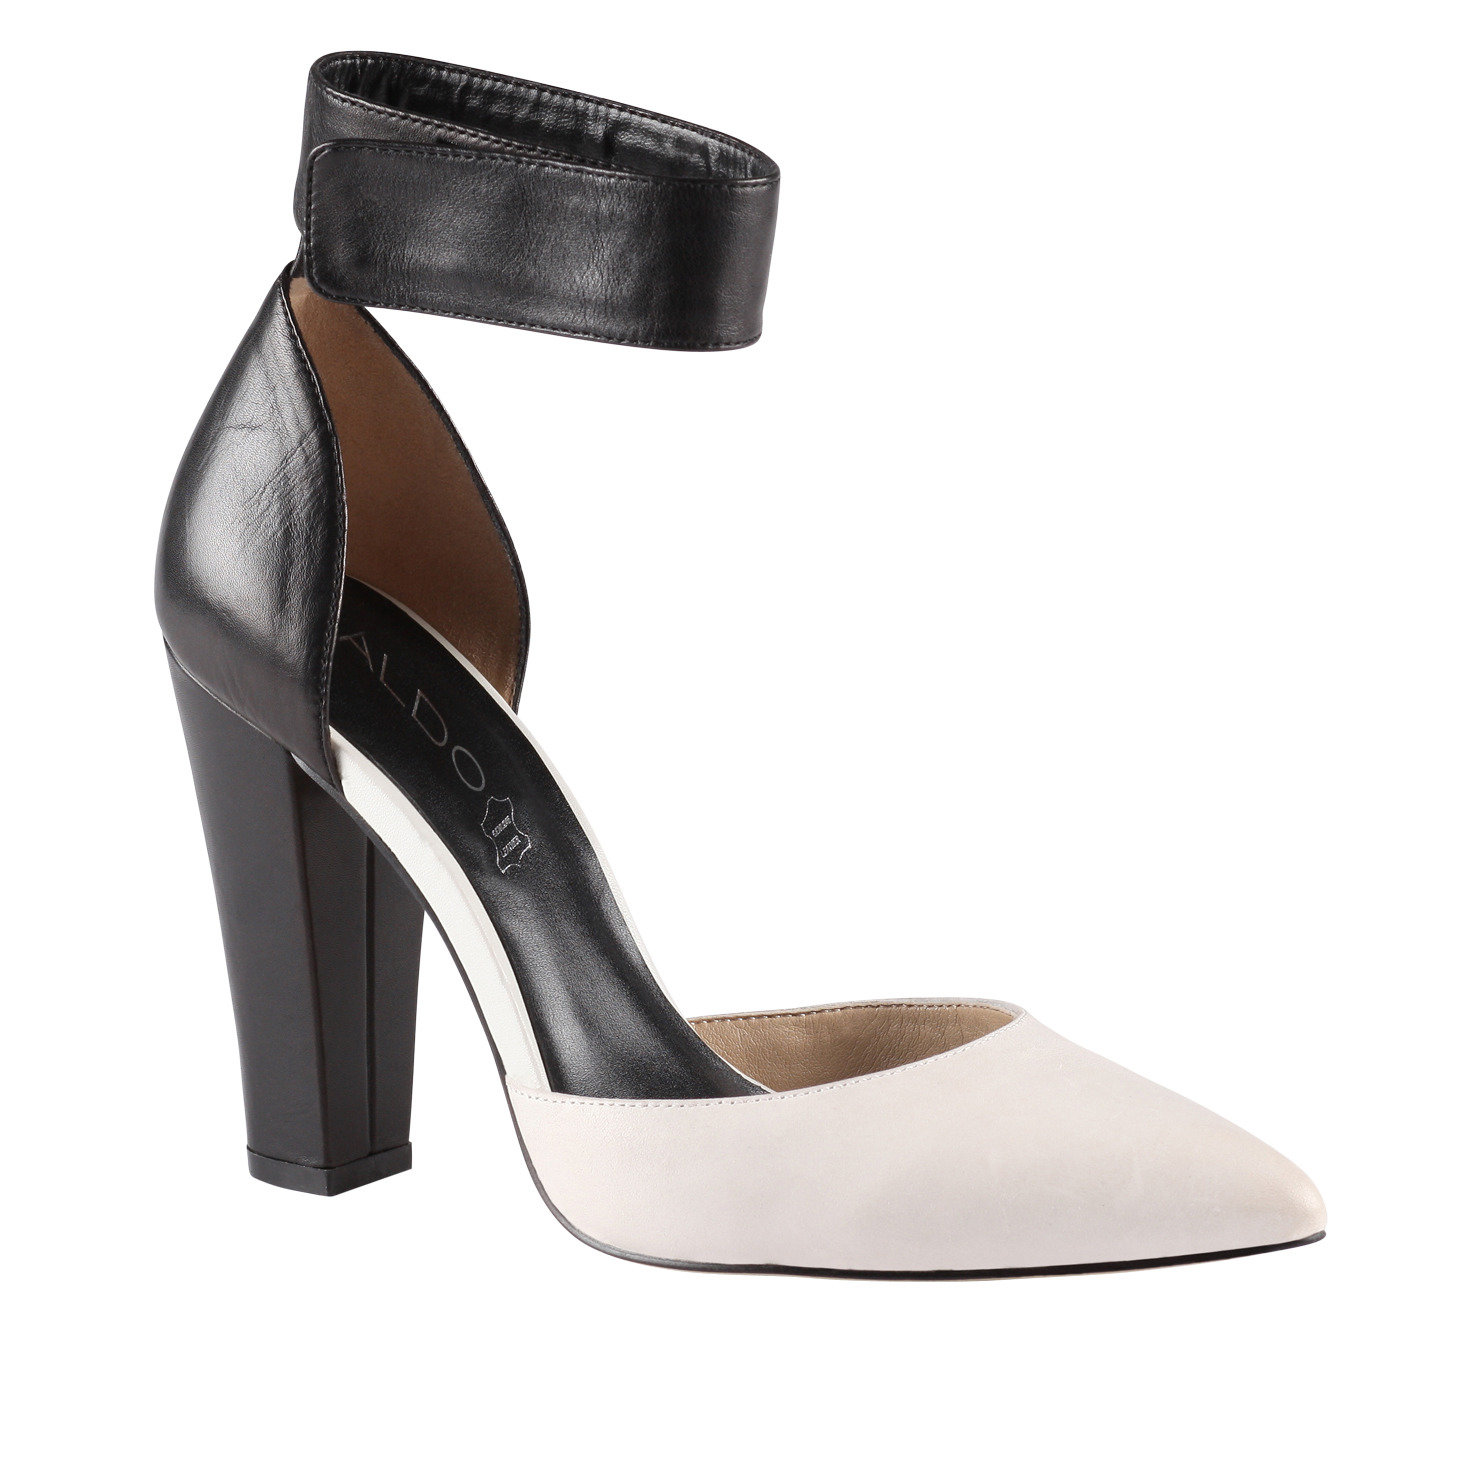 High Heel Womens Shoes We have the best collection for women's high heel shoes, all for the lowest prices. Whether you're looking for high heel boots, dress shoes or sandals, we have high heel women's shoes in all varieties, colors and sizes.